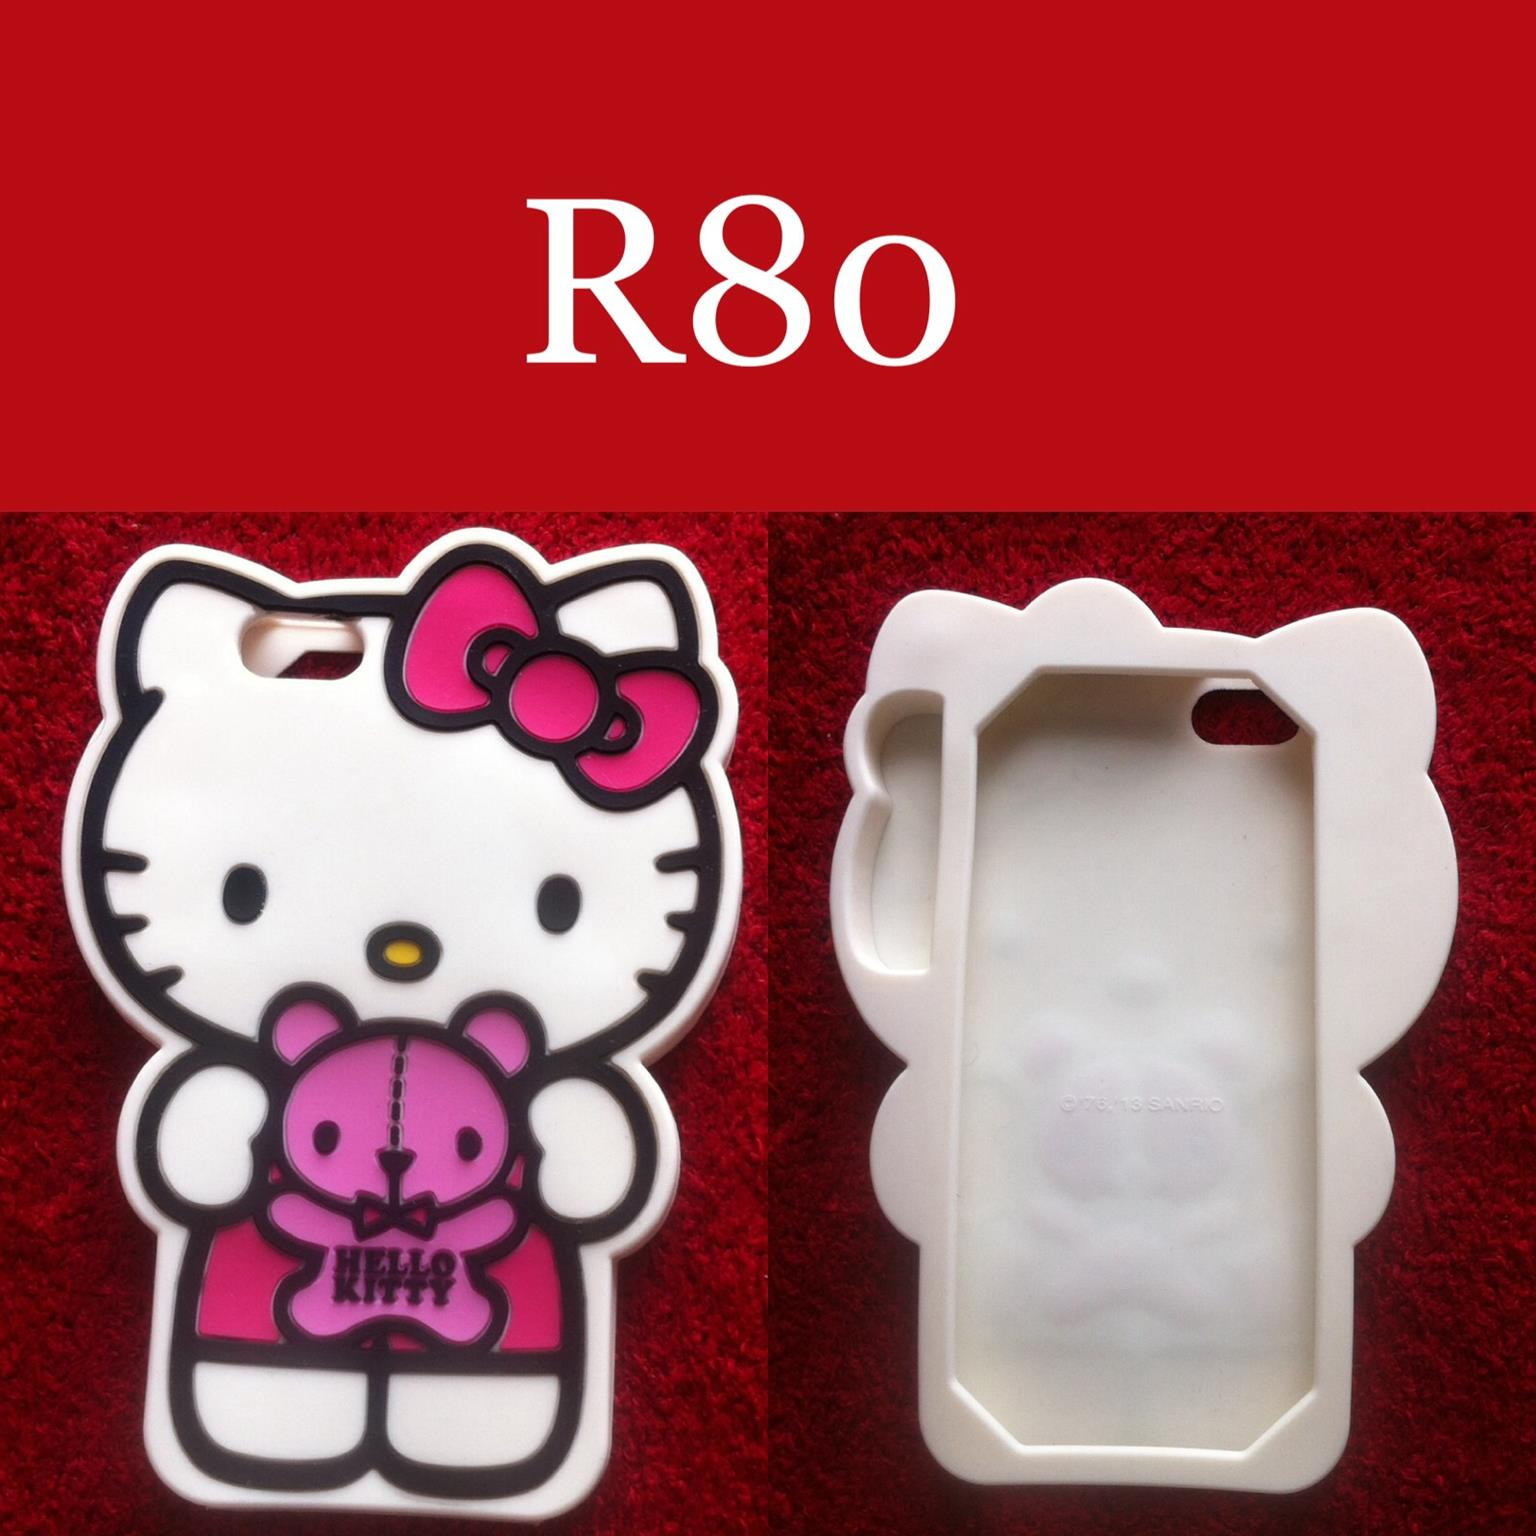 Iphone 5 / 6 phone covers